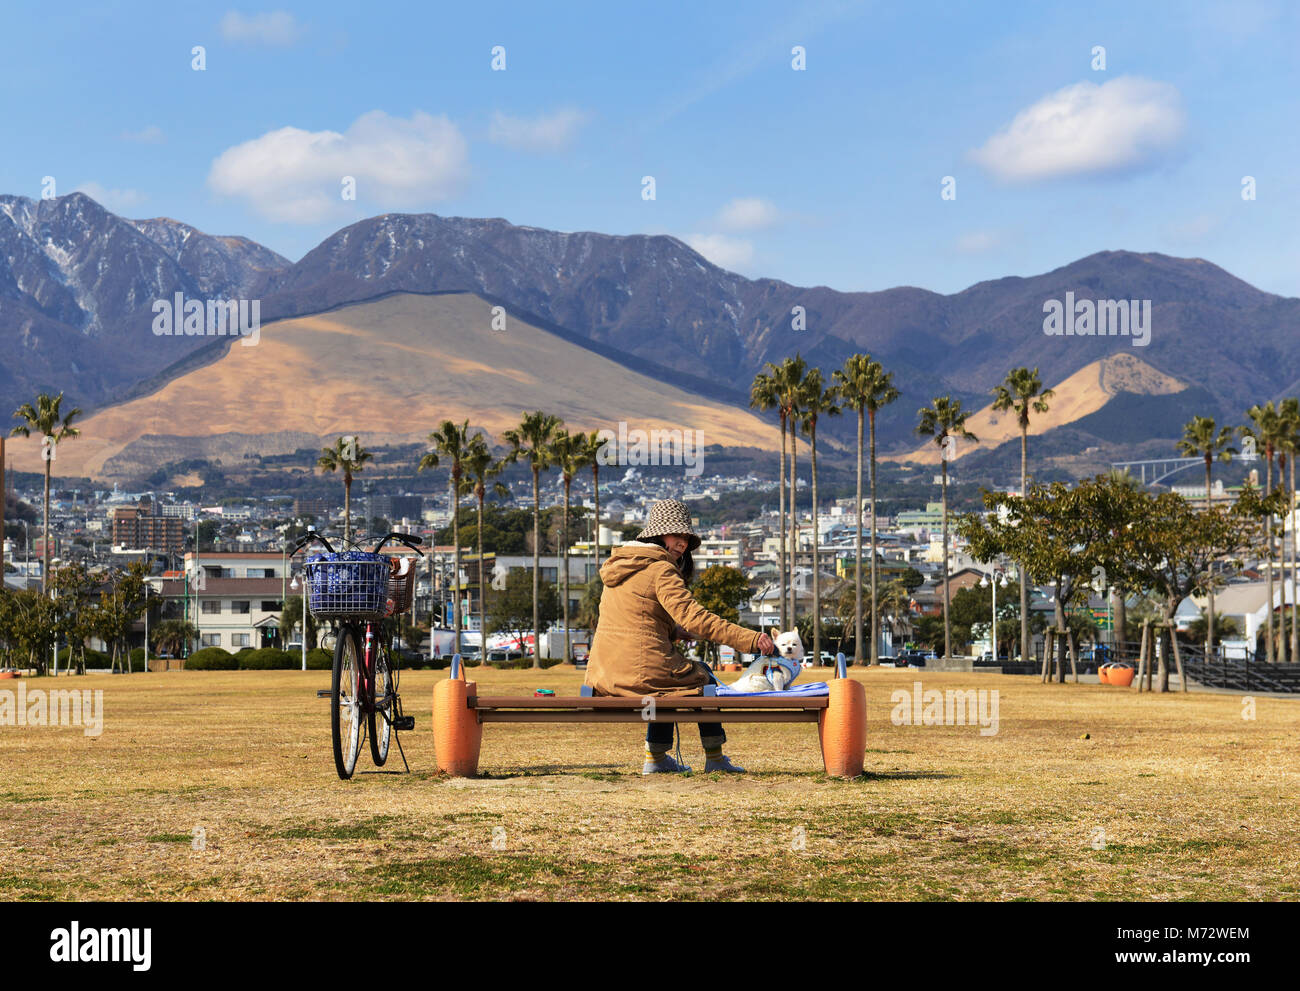 A Japanese woman with her pet dog at the Shoningahama Park in Beppu, Japan. - Stock Image